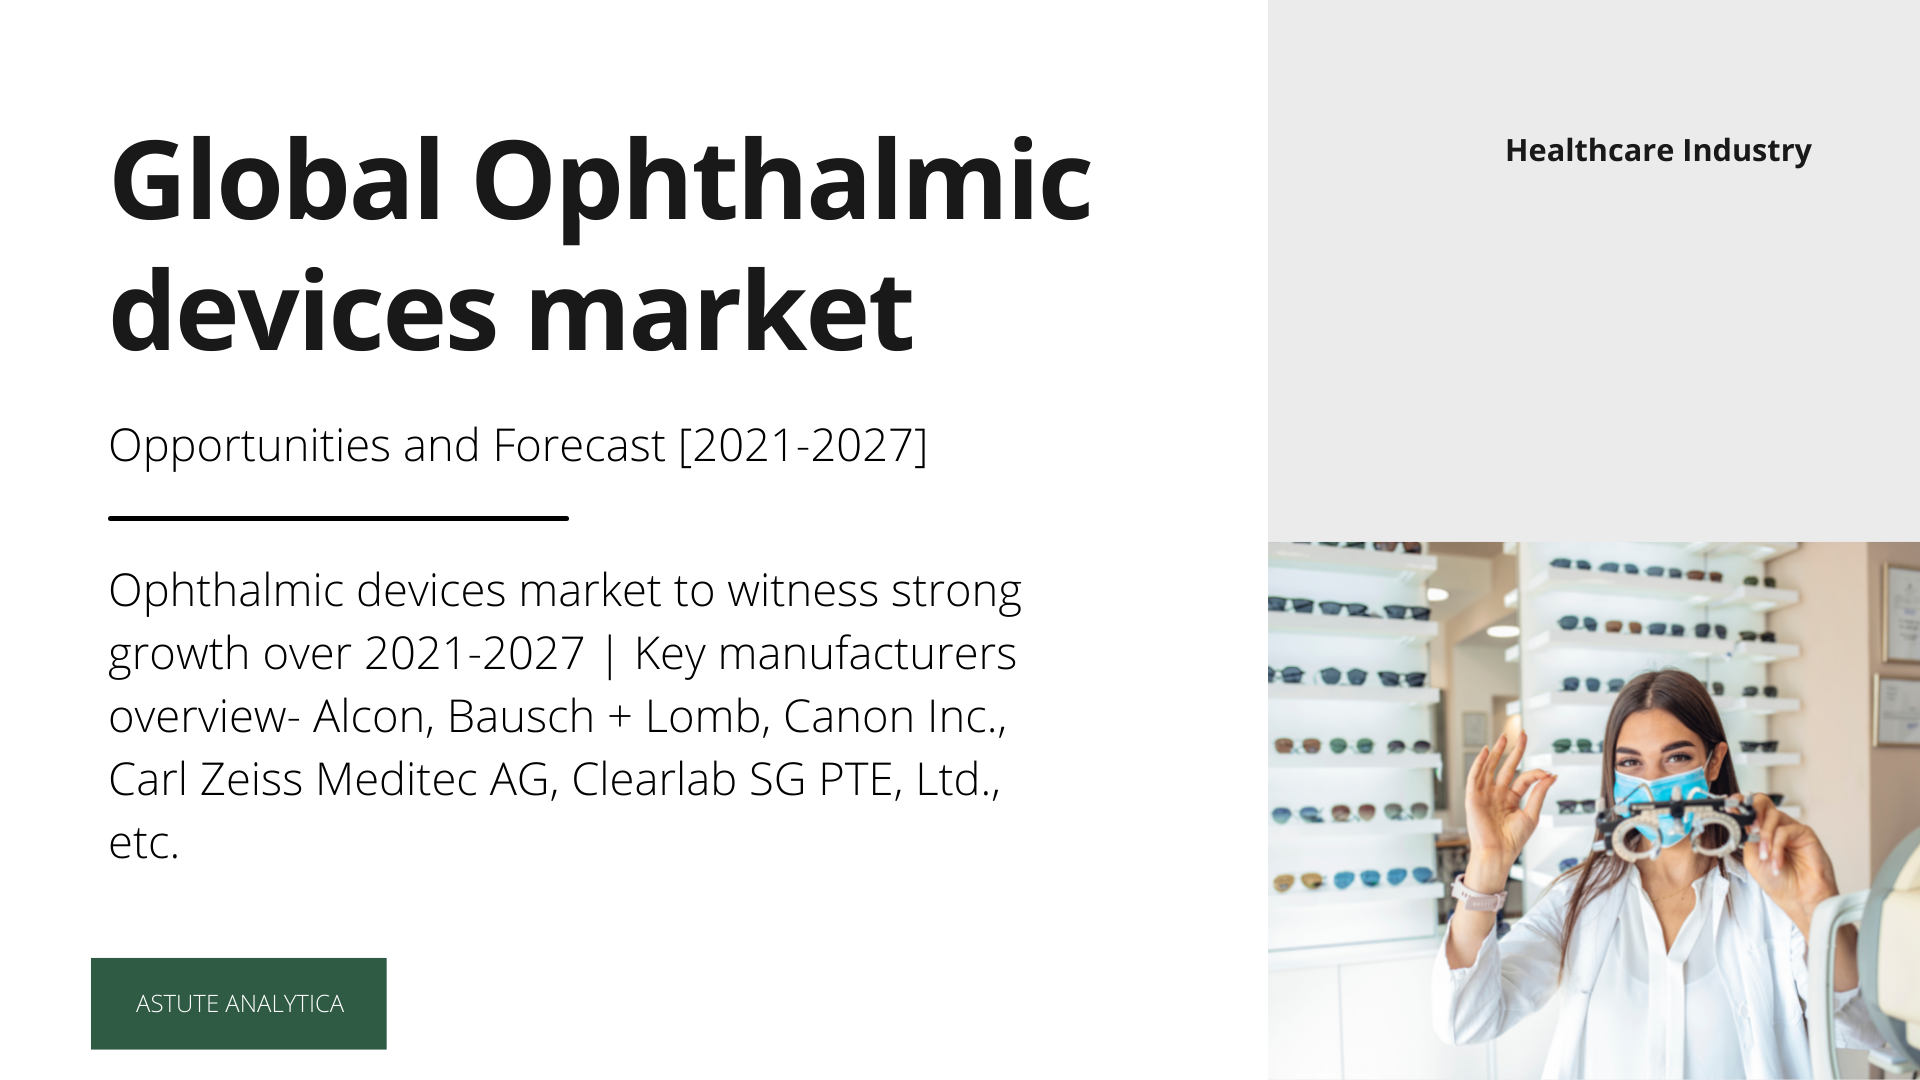 Ophthalmic devices market future prospects, growth opportunities and outlook (2021-2027) shared in trending report